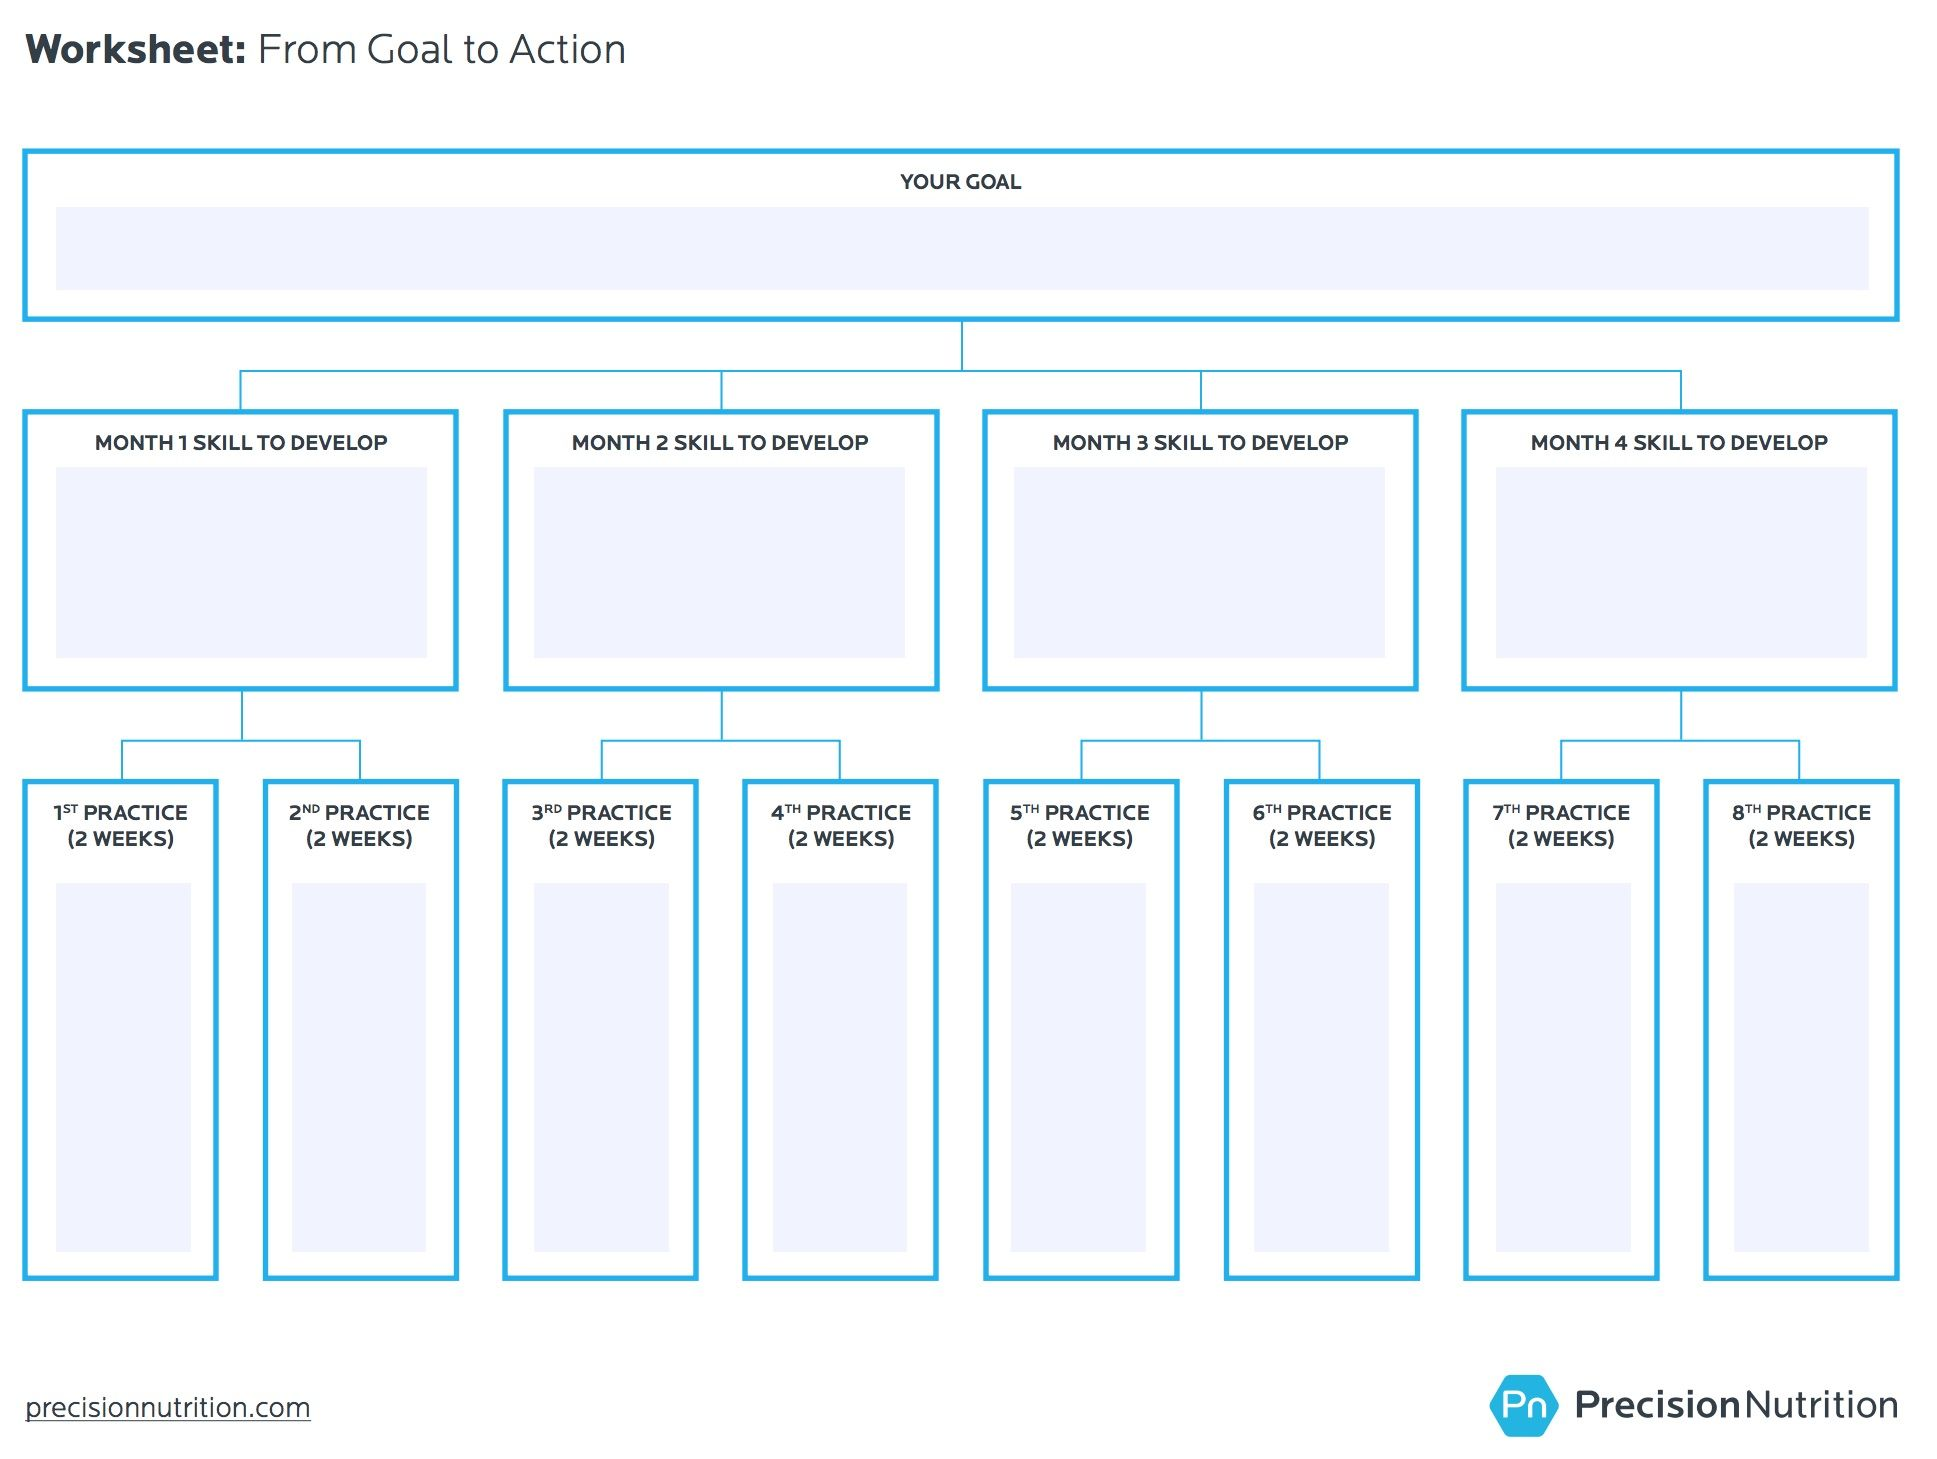 Worksheet Goal To Action